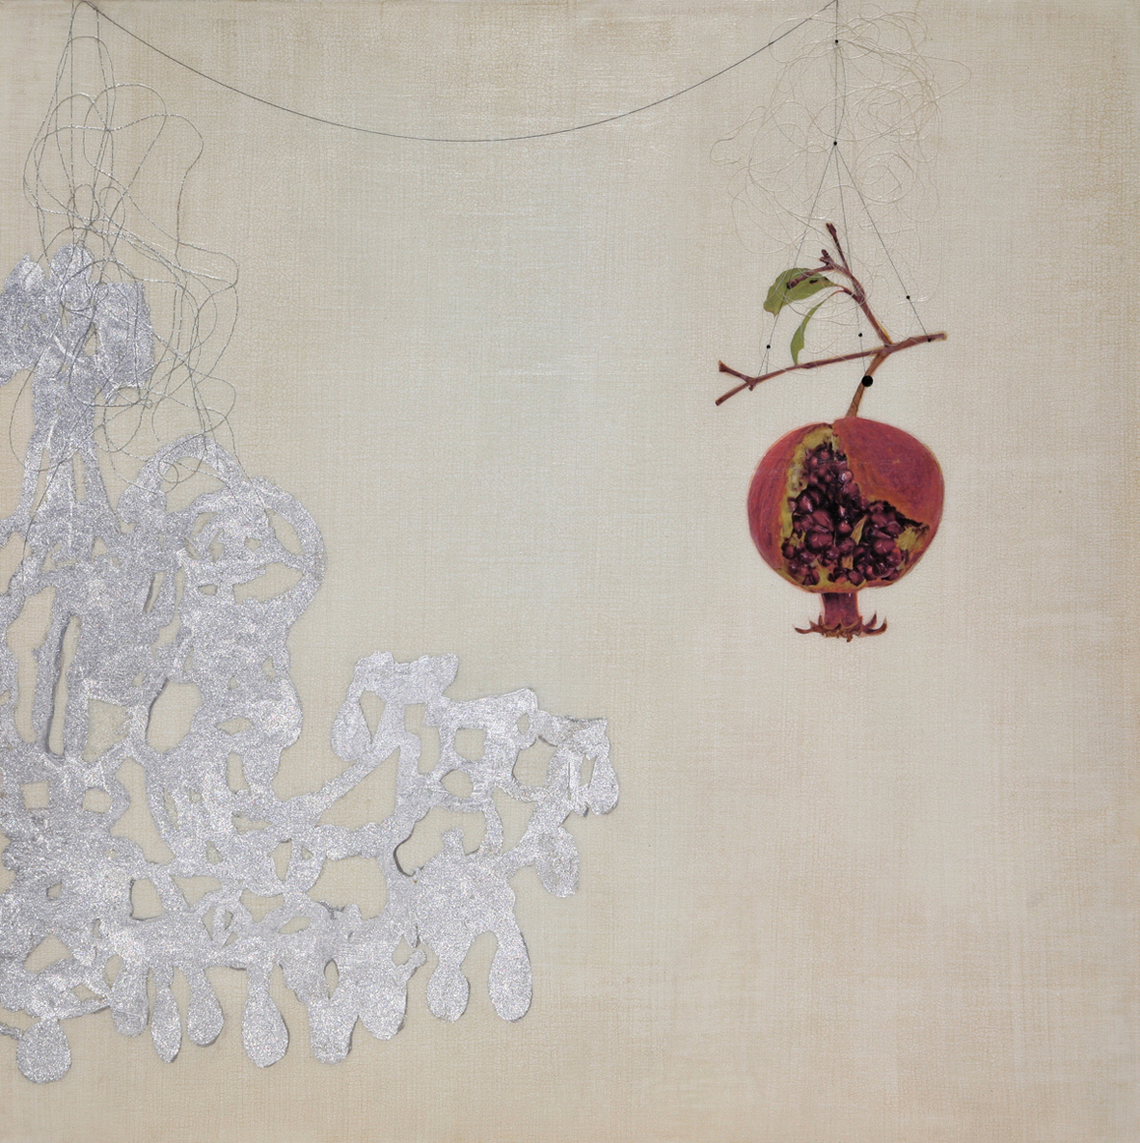 Pomegranate and Chandelier